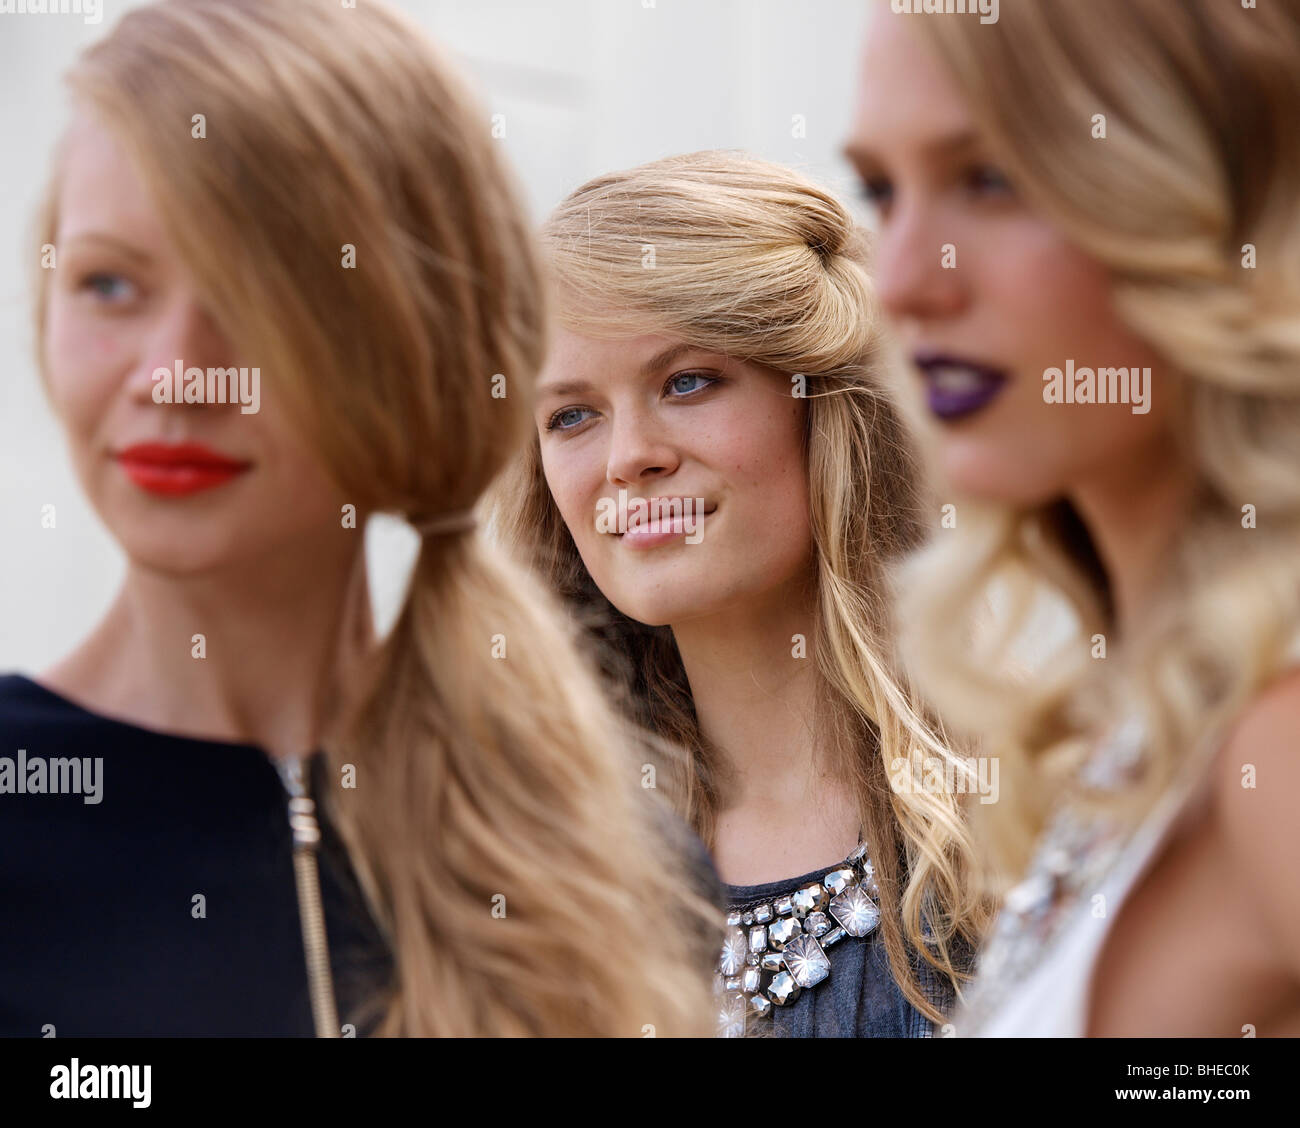 MODELS POSE AT L'OREAL FASHION OPENING AT FEDERATION SQUARE MELBOURNE VICTORIA AUSTRALIA - Stock Image